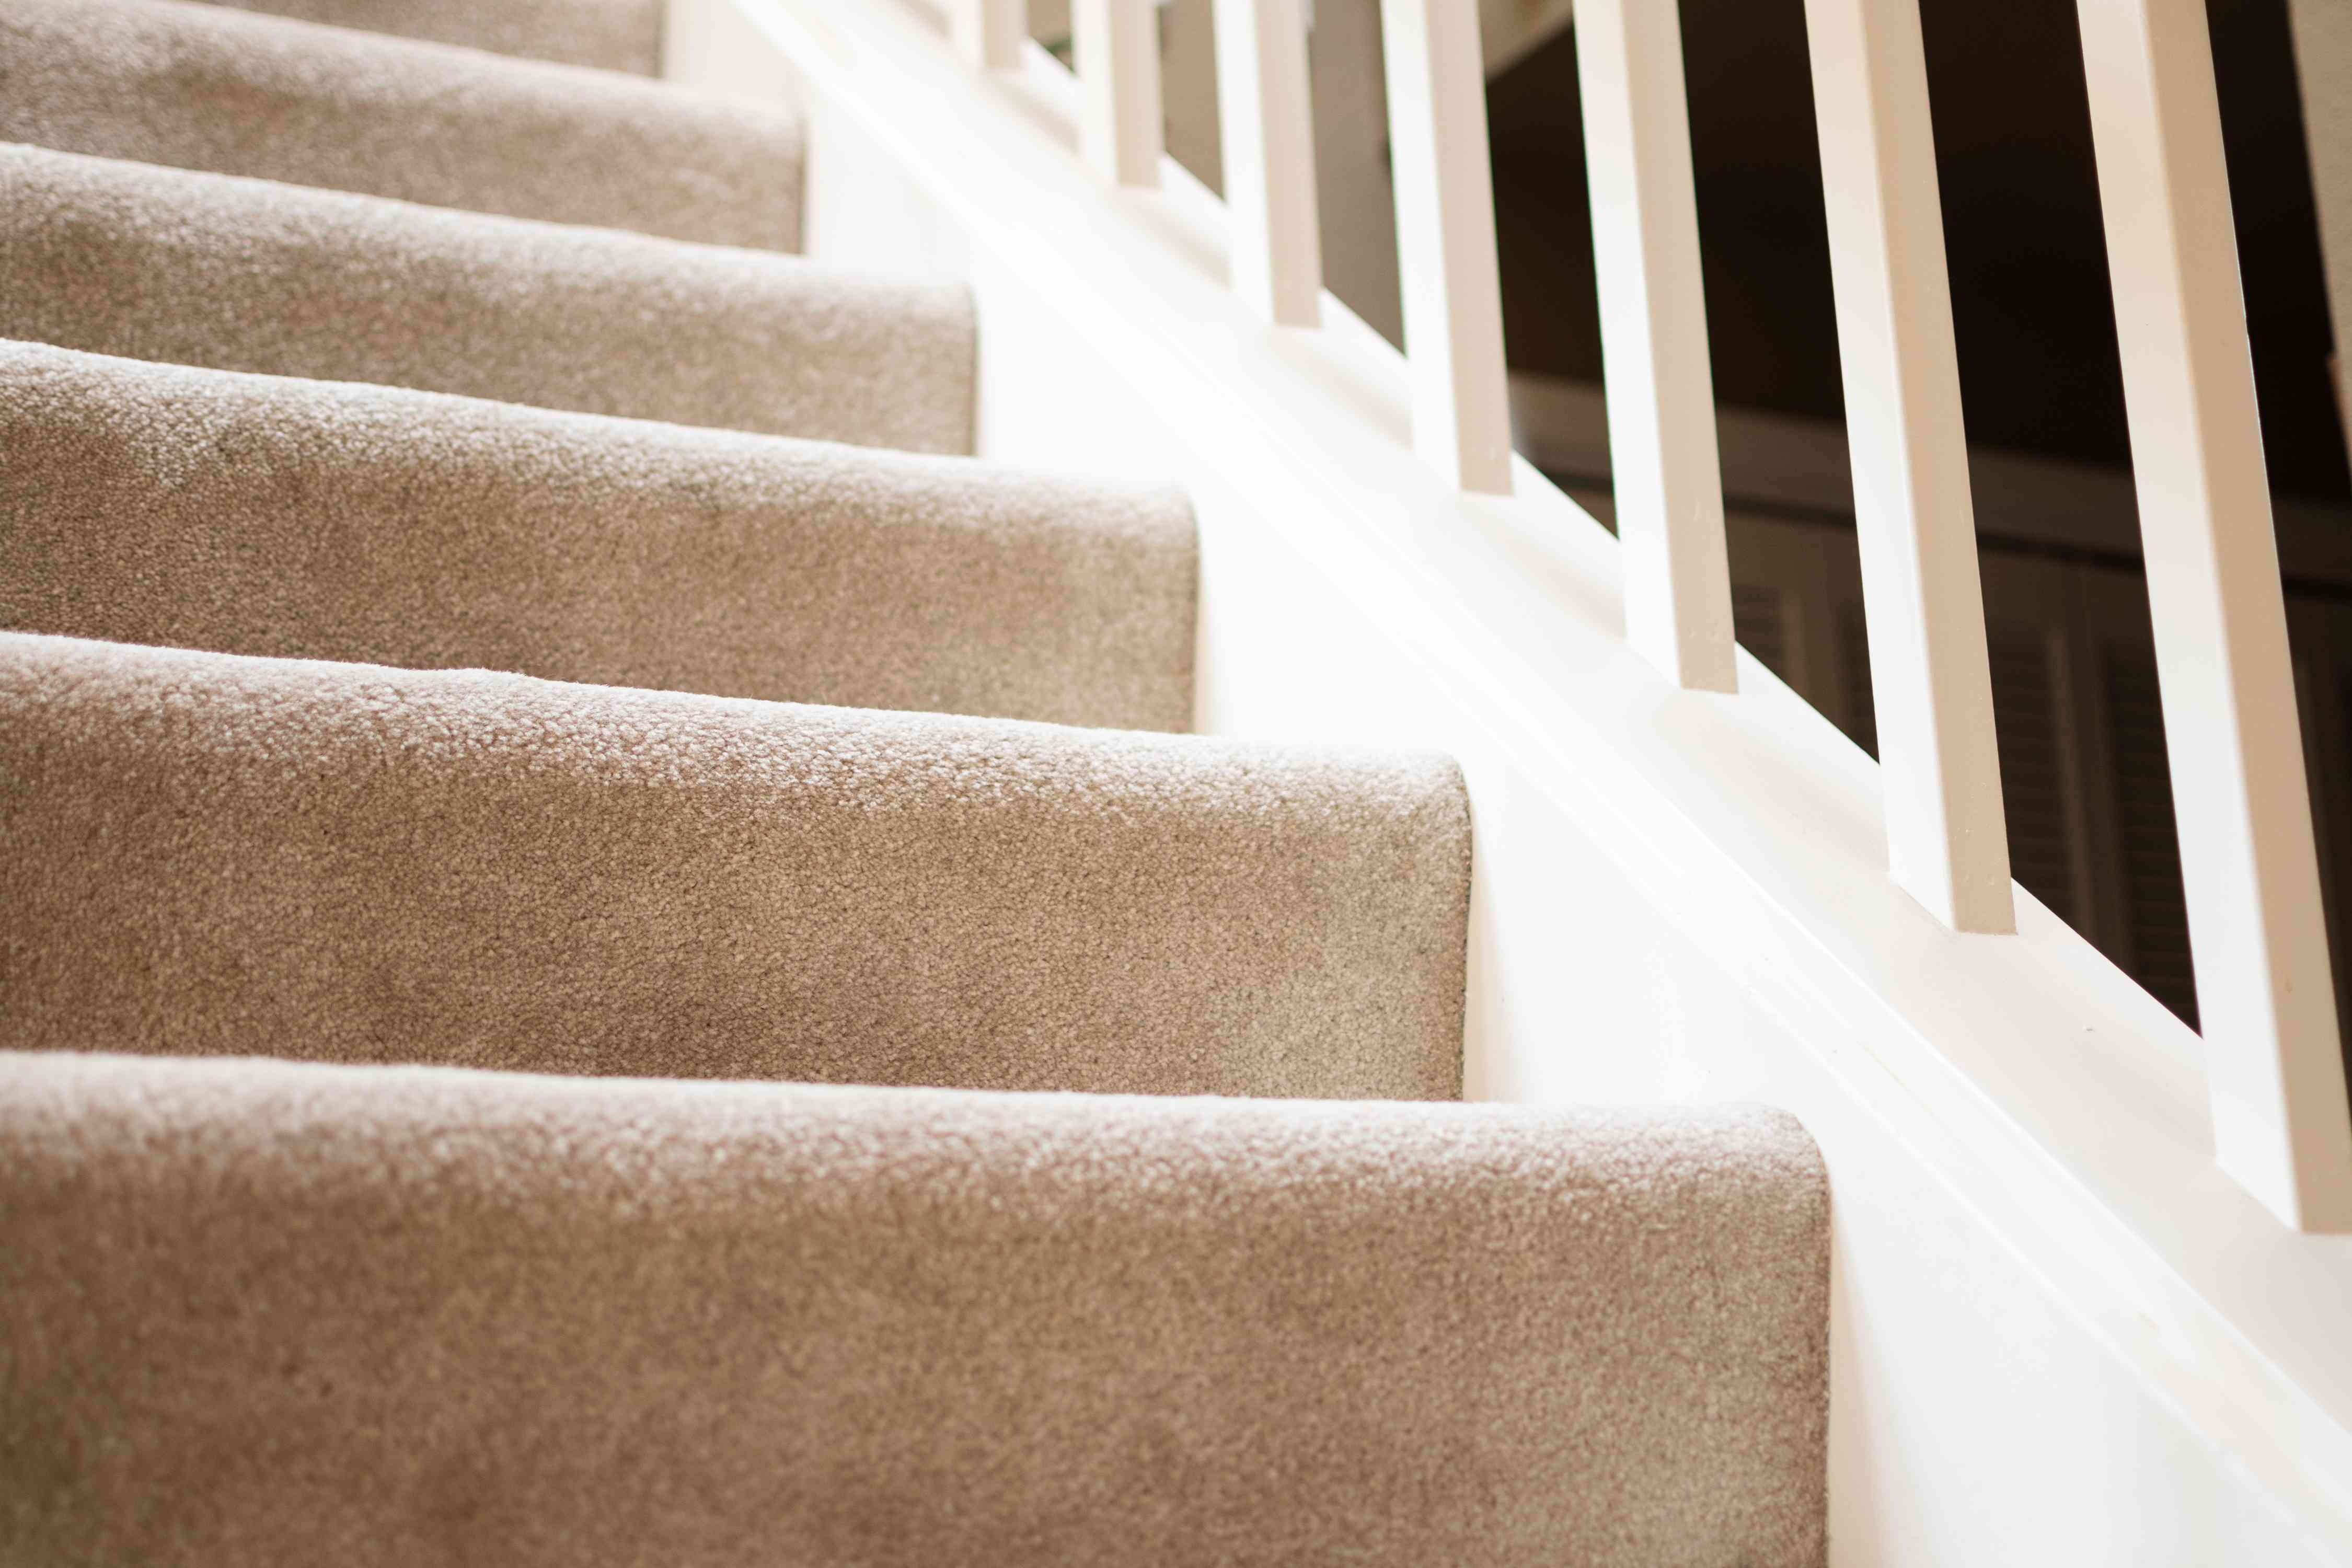 Tan carpeted stairs with white railing closeup